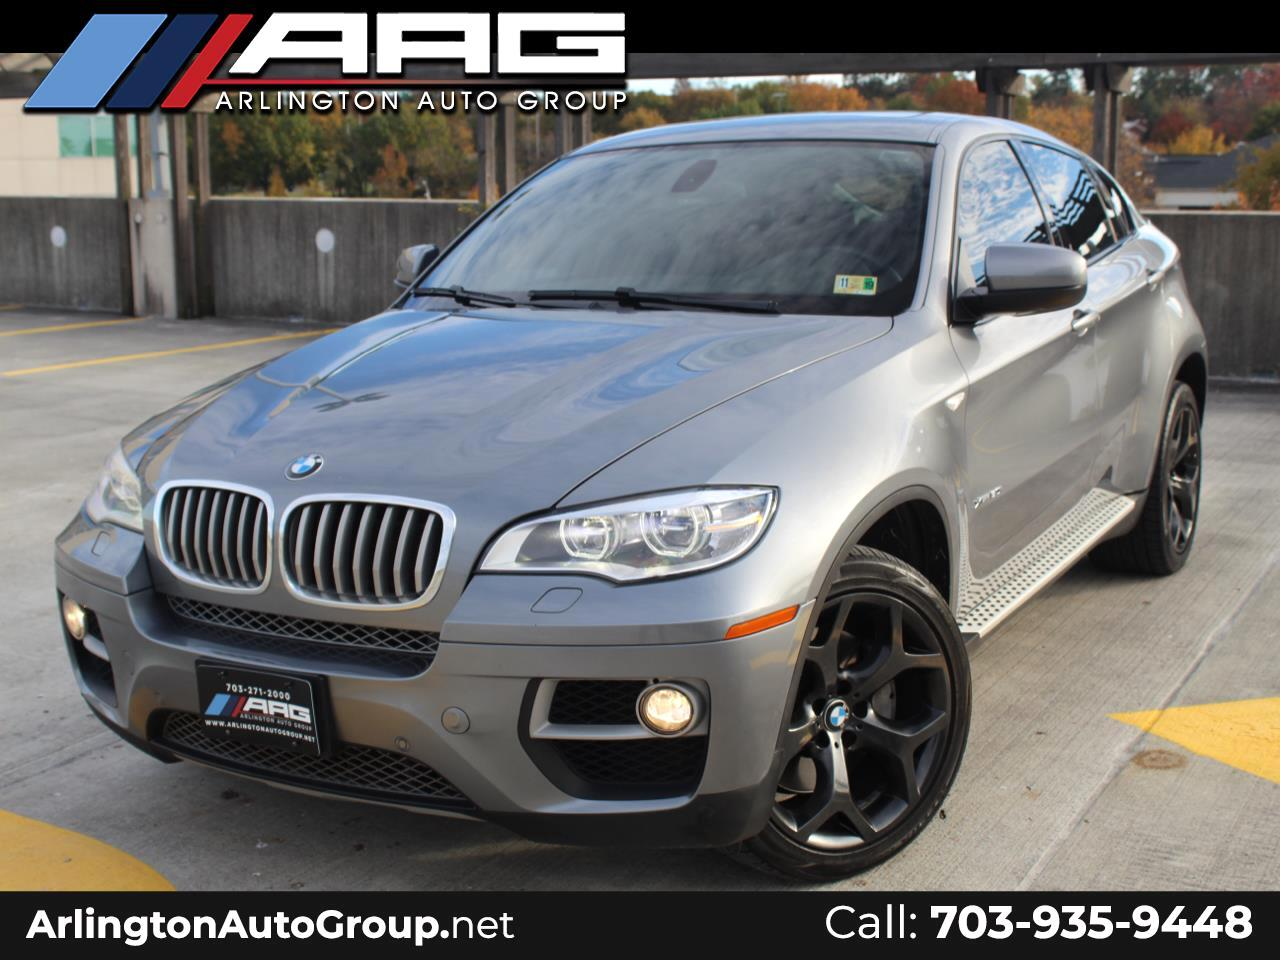 BMW X6 AWD 4dr xDrive50i 2013